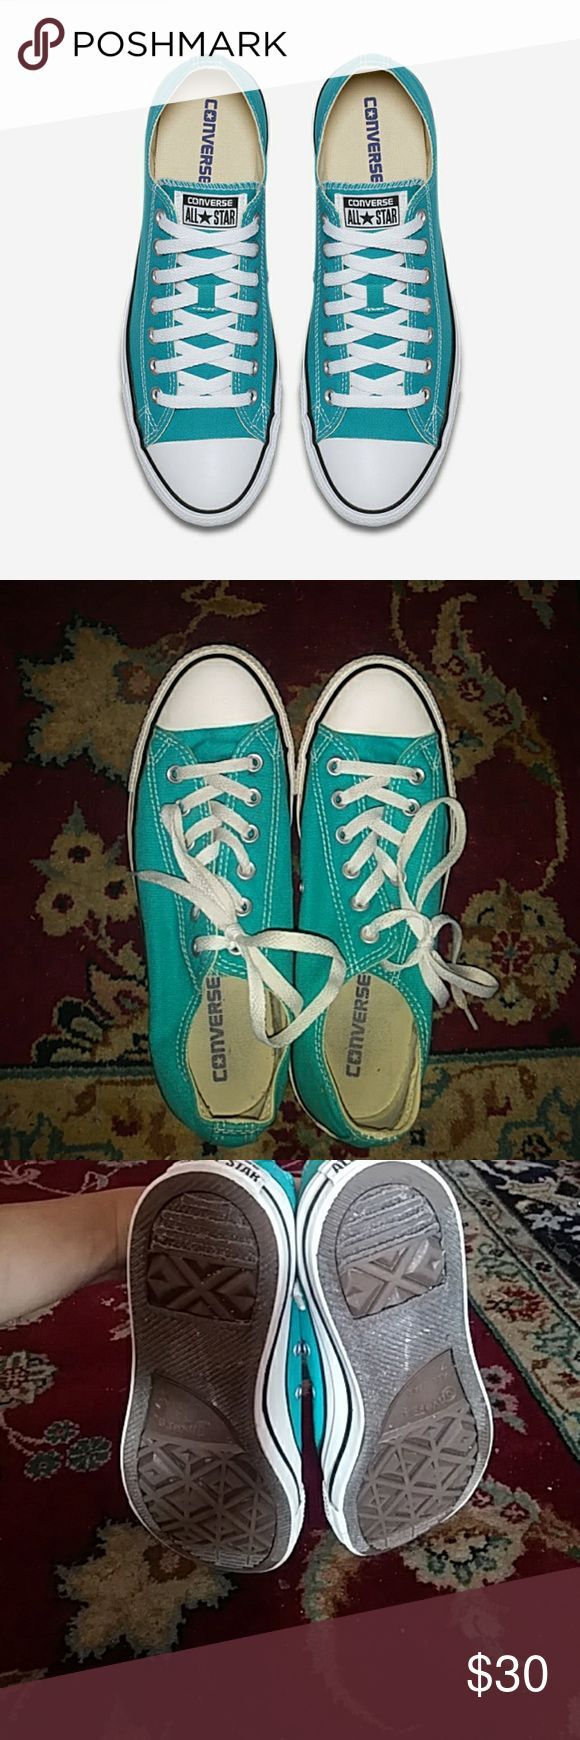 Teal Converse ! Bought from an amazing posher but sadly I realized im no longer 9. They are in perfect condition! Only use is inside and out as shown in pictures. Converse Shoes Sneakers